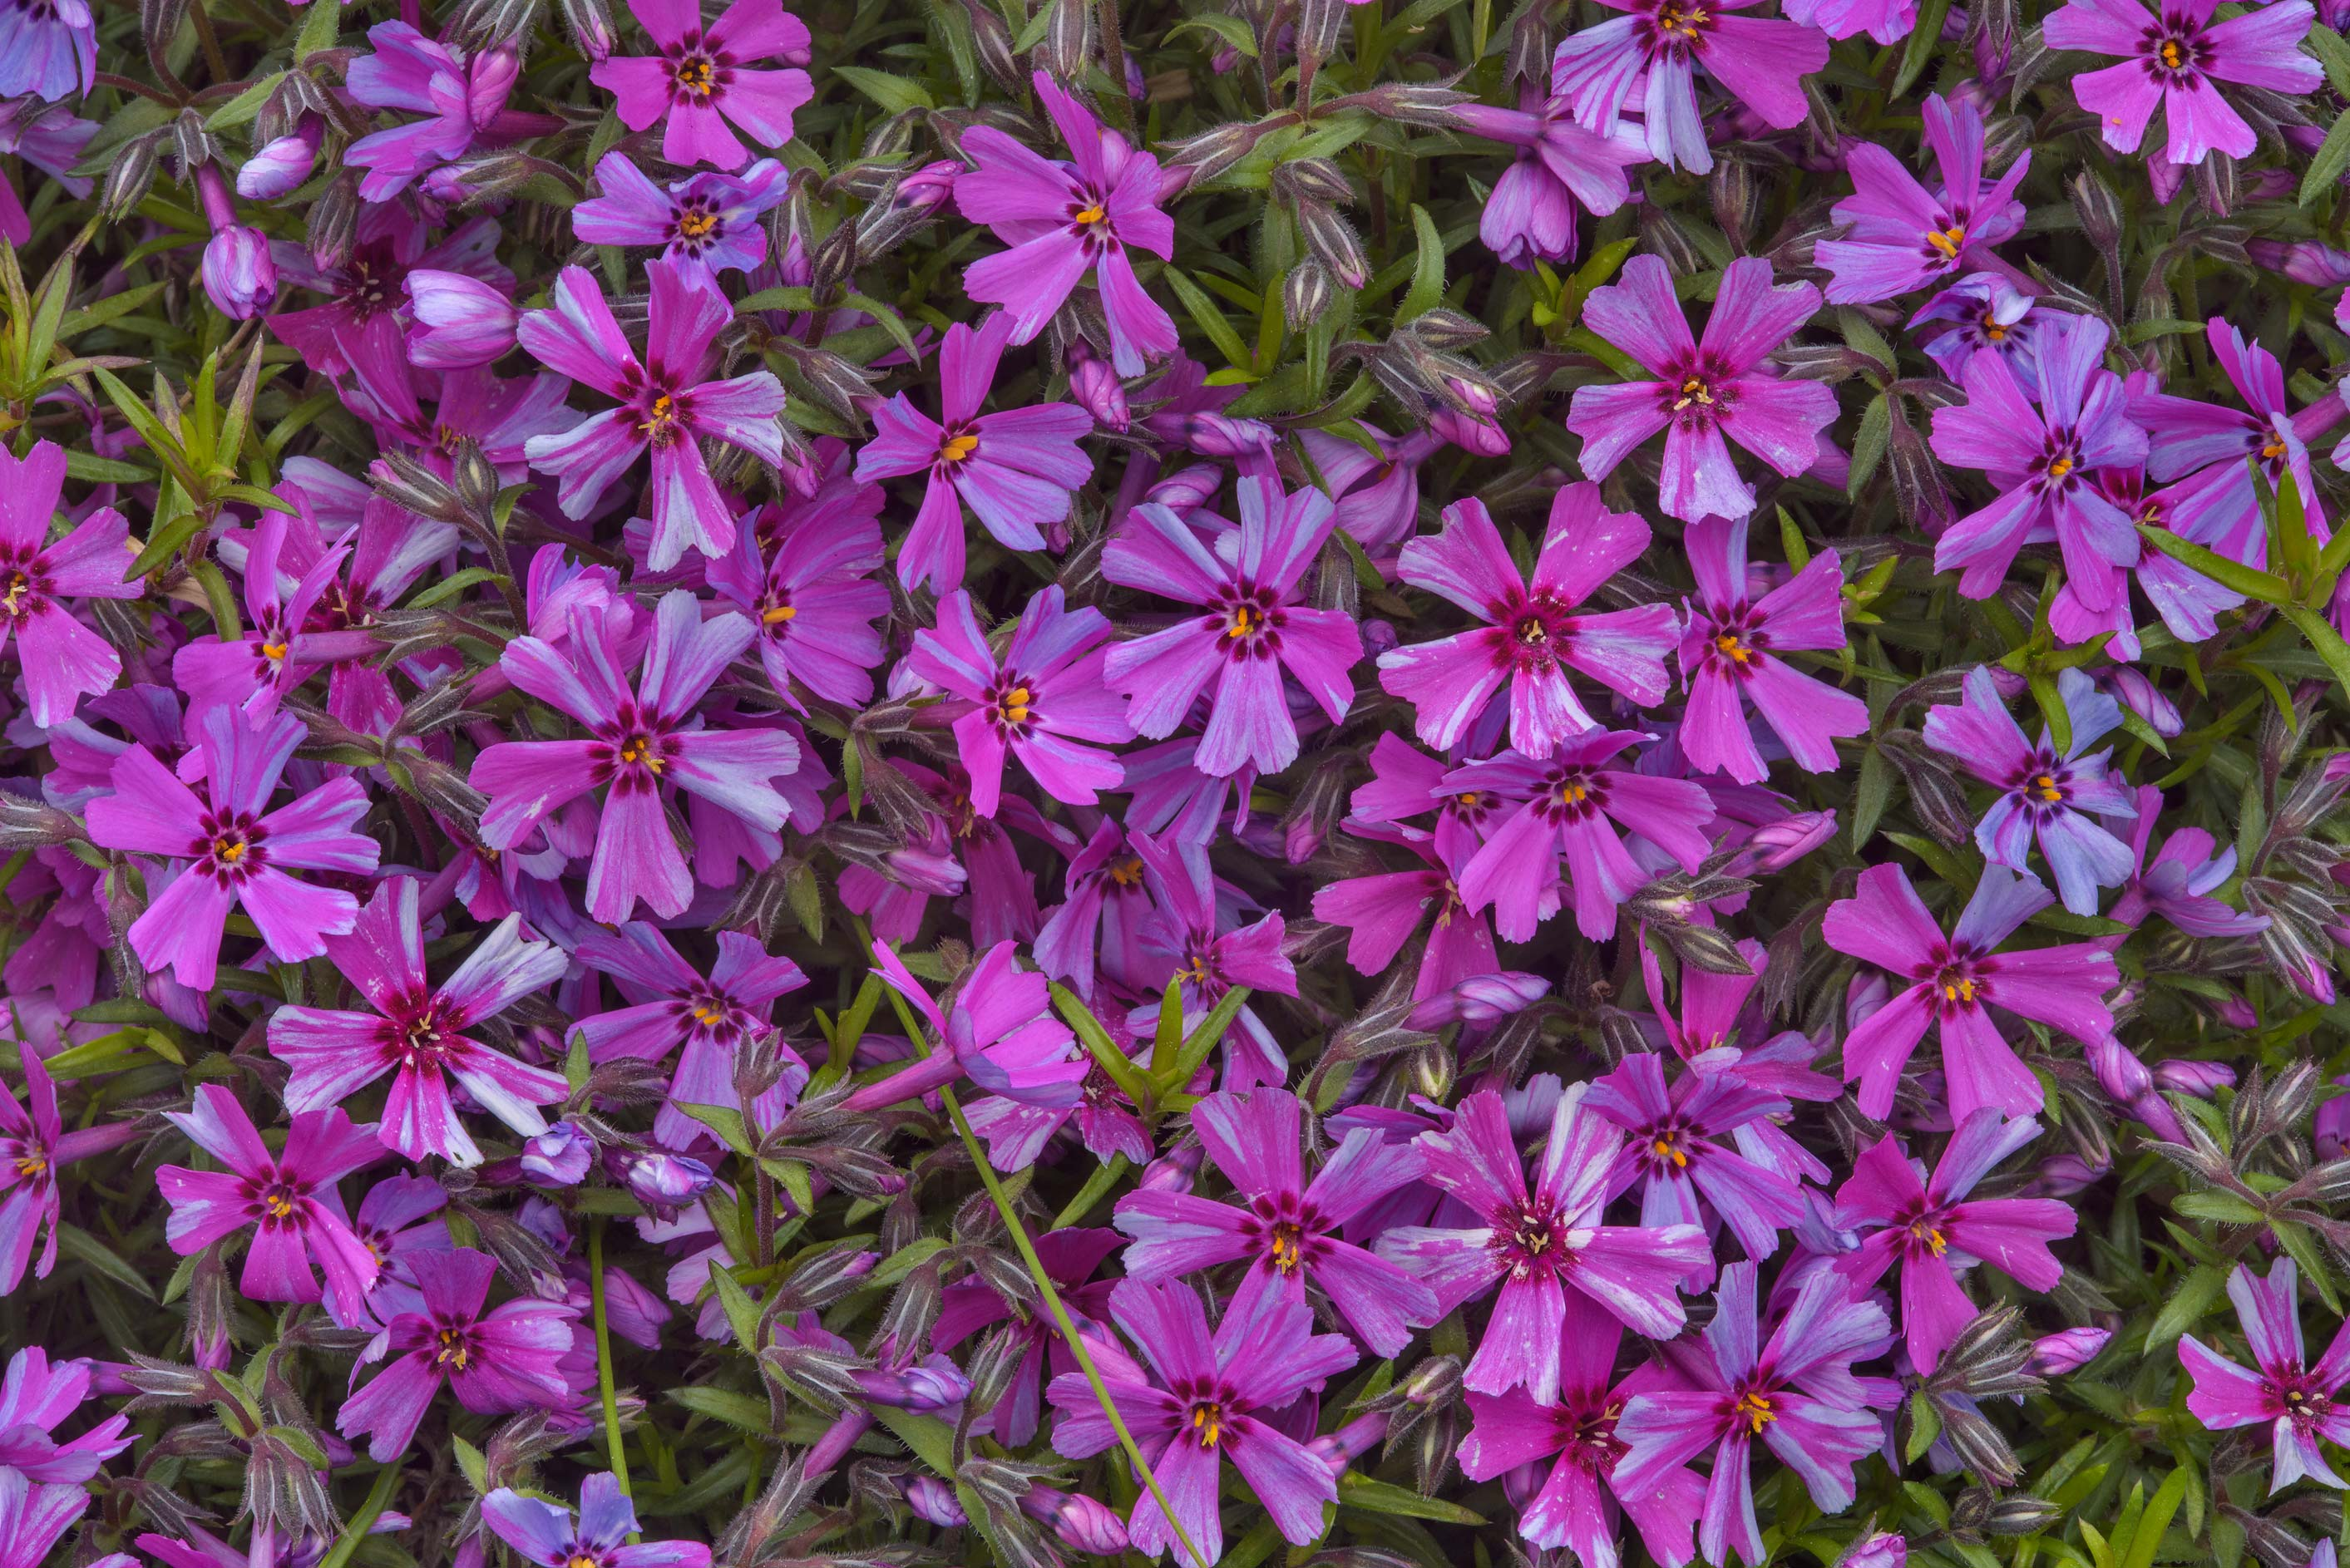 Pink phlox flowers in Botanic Gardens of Komarov...Institute. St.Petersburg, Russia